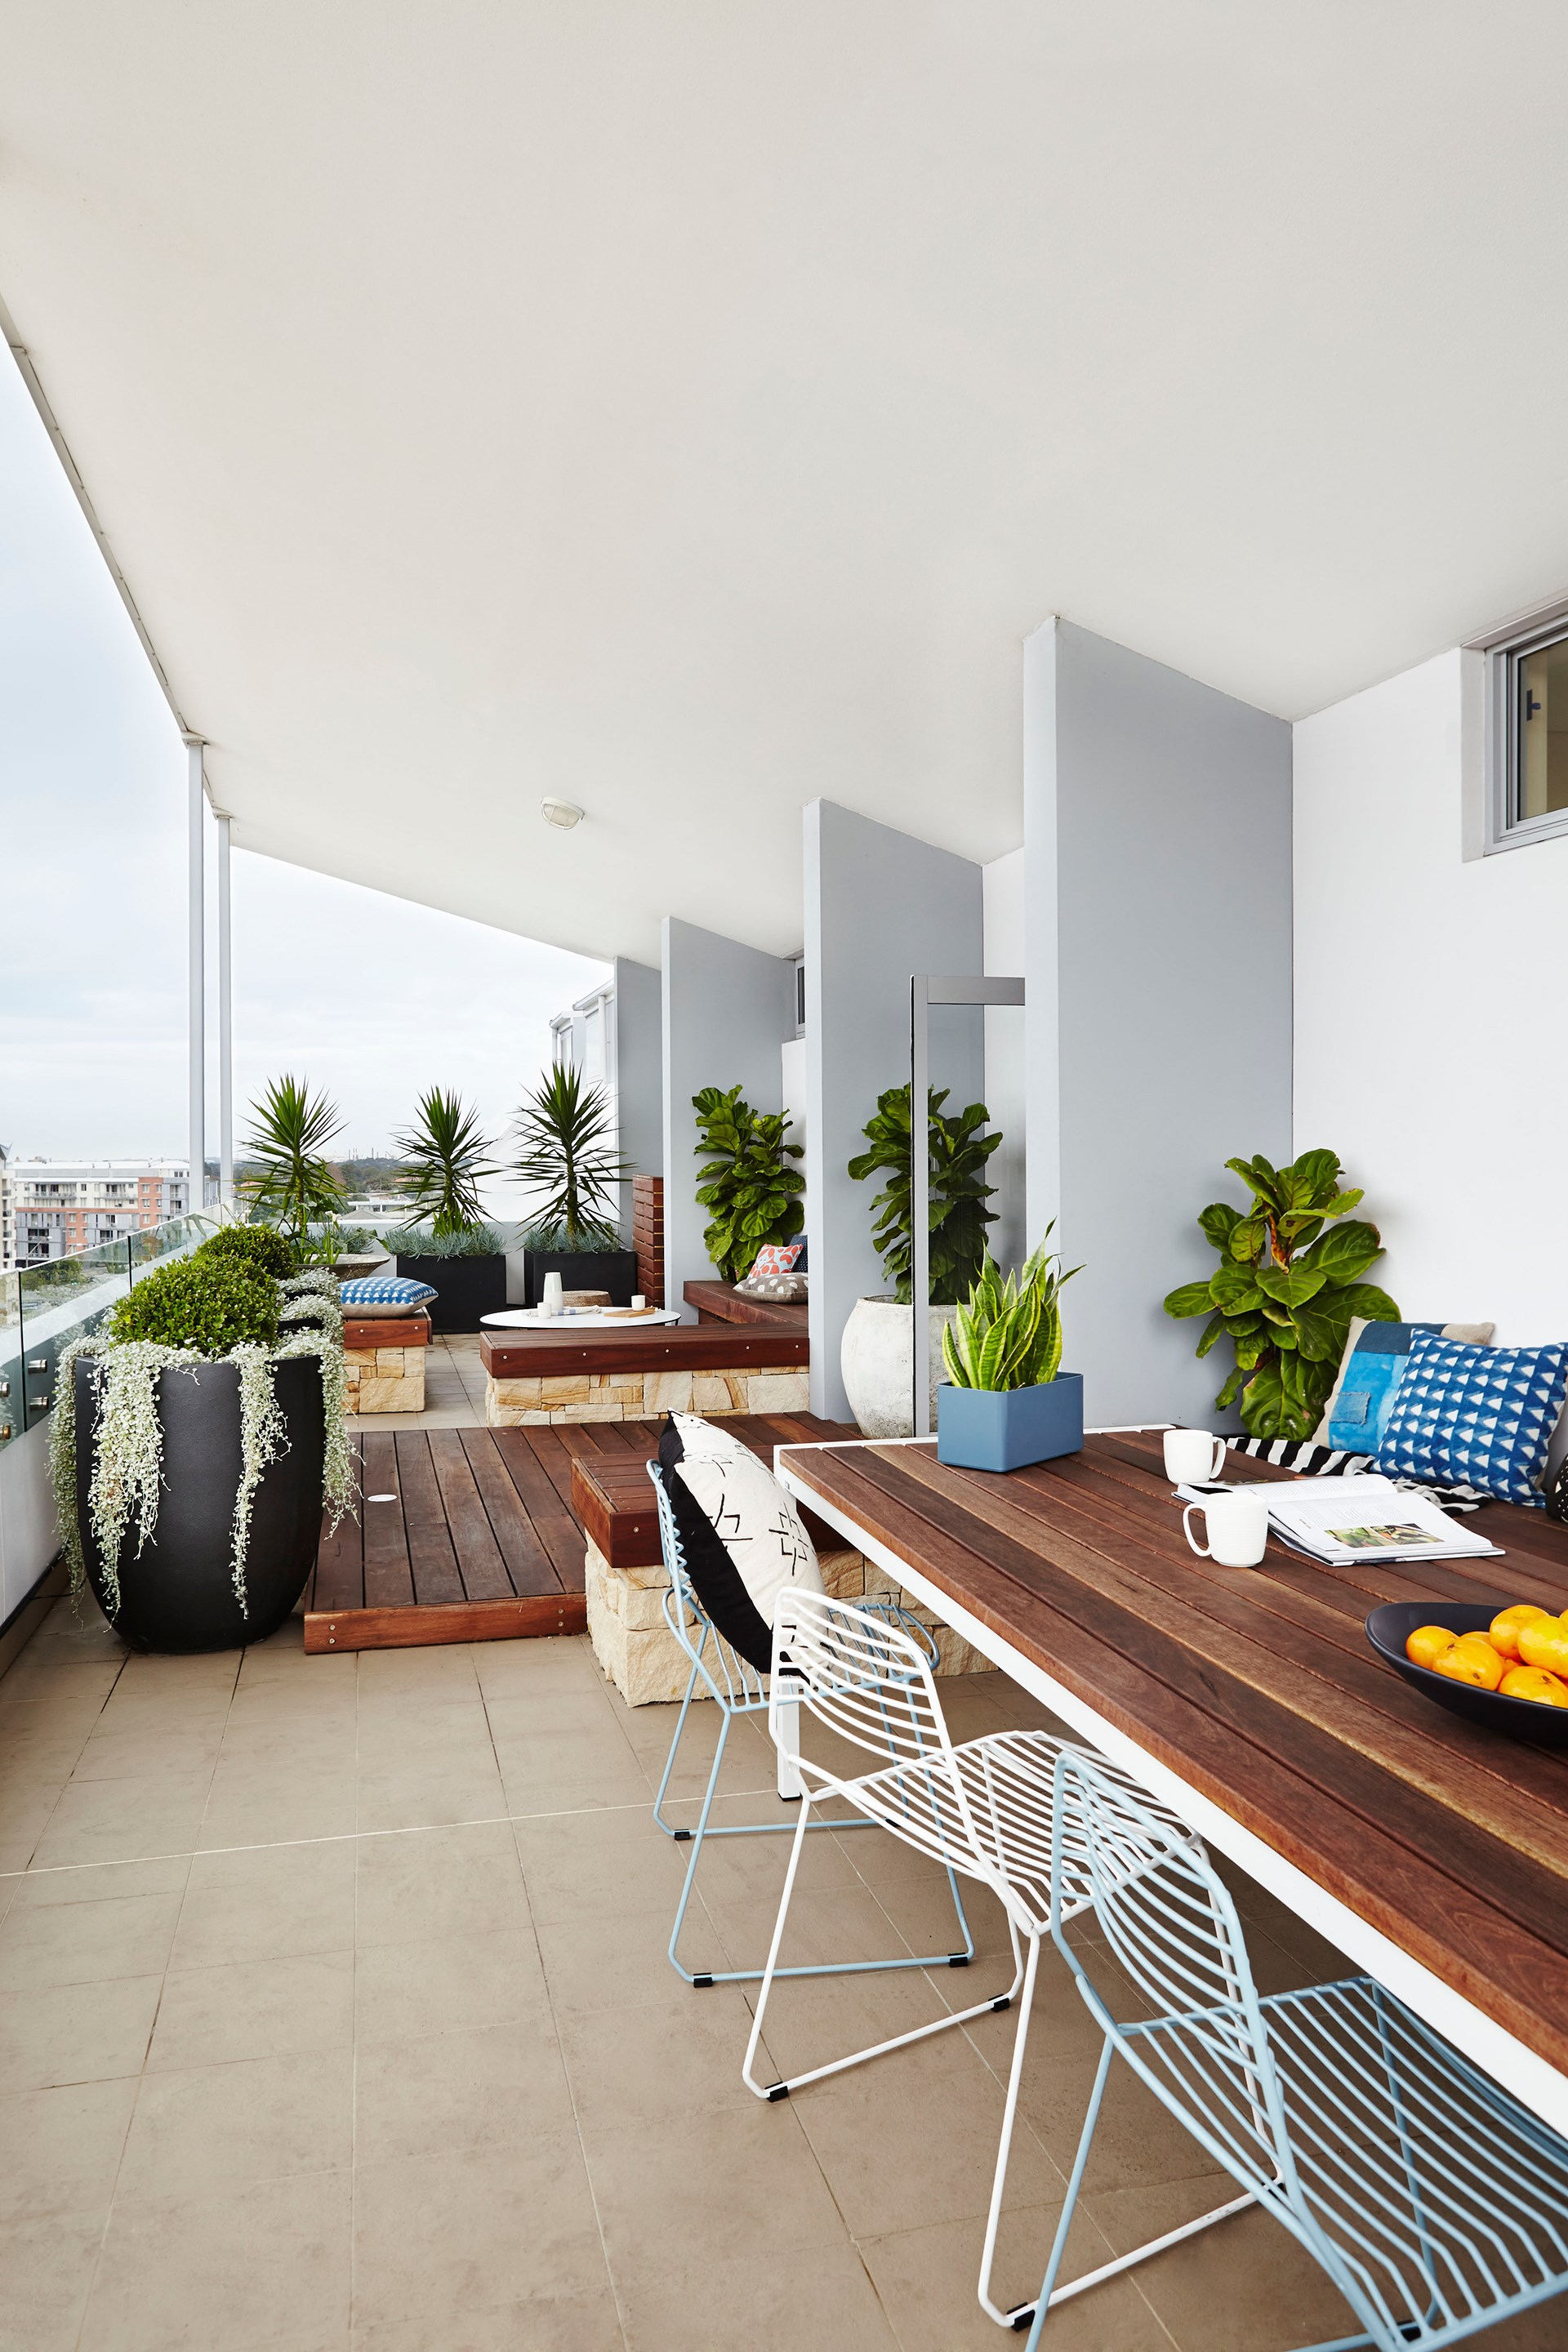 """Balcony gardens (up 118%) are easy to make and care for, perfect for your small city apartment. Time to move on from the vertical succulent wall (down 40%). [ > Check out the ultimate balcony garden](http://www.homestolove.com.au/gallery-the-ultimate-garden-balcony-2511